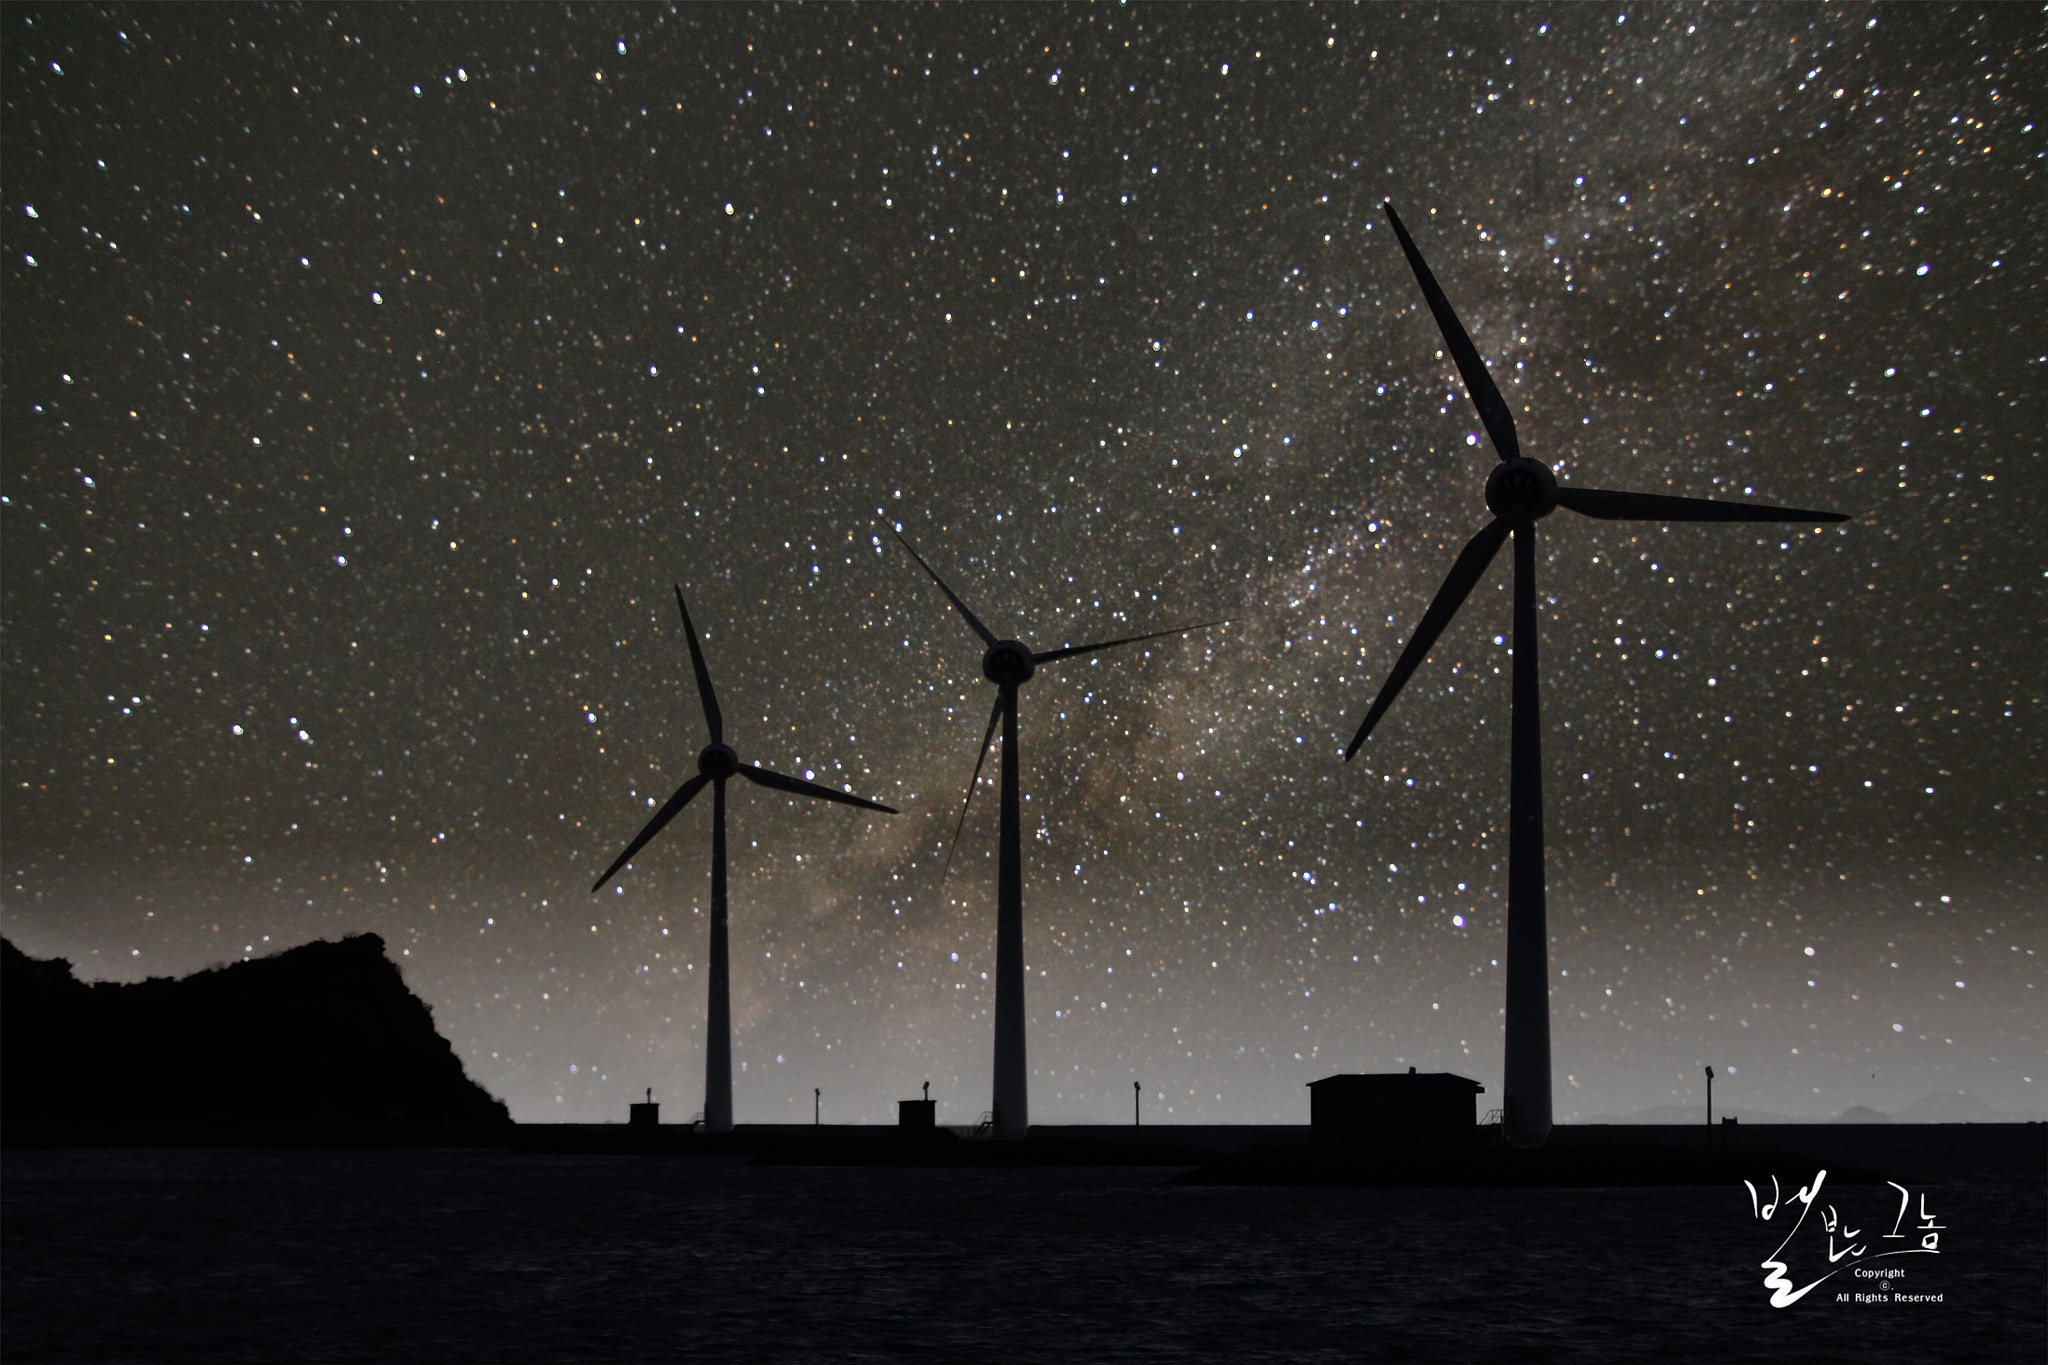 Photograph The Starlit Wind Power Plant. by Keun-Hong Park on 500px